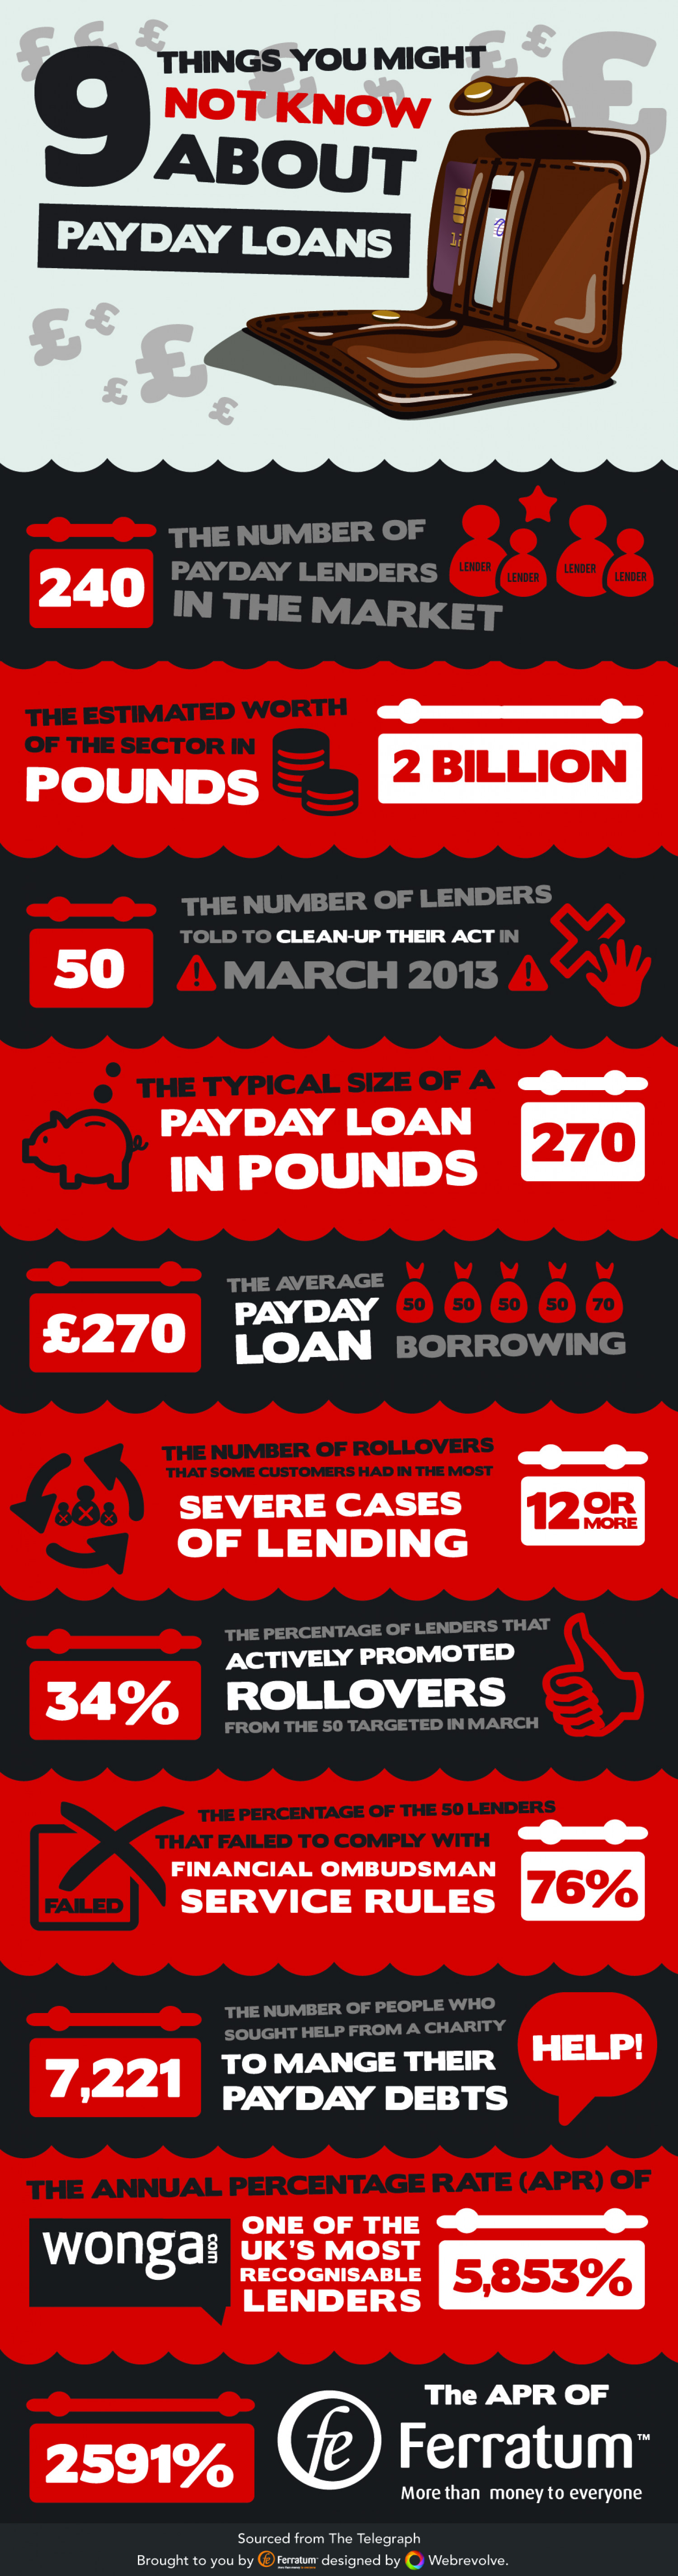 9 Things You Might Not Know About Payday Loans Infographic